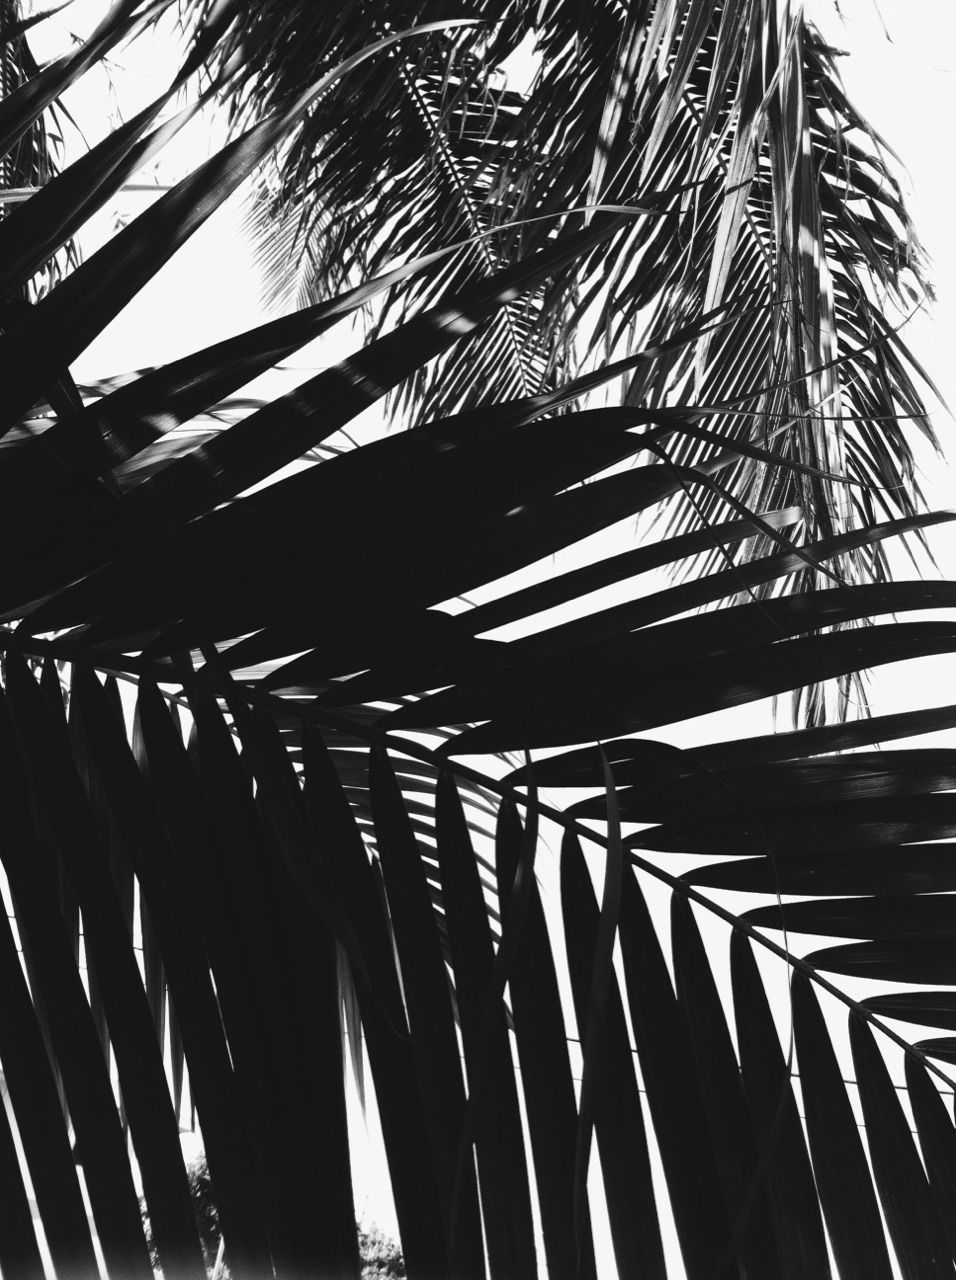 Photography black and white and nature image on we heart it urbanflavours pl tumblr